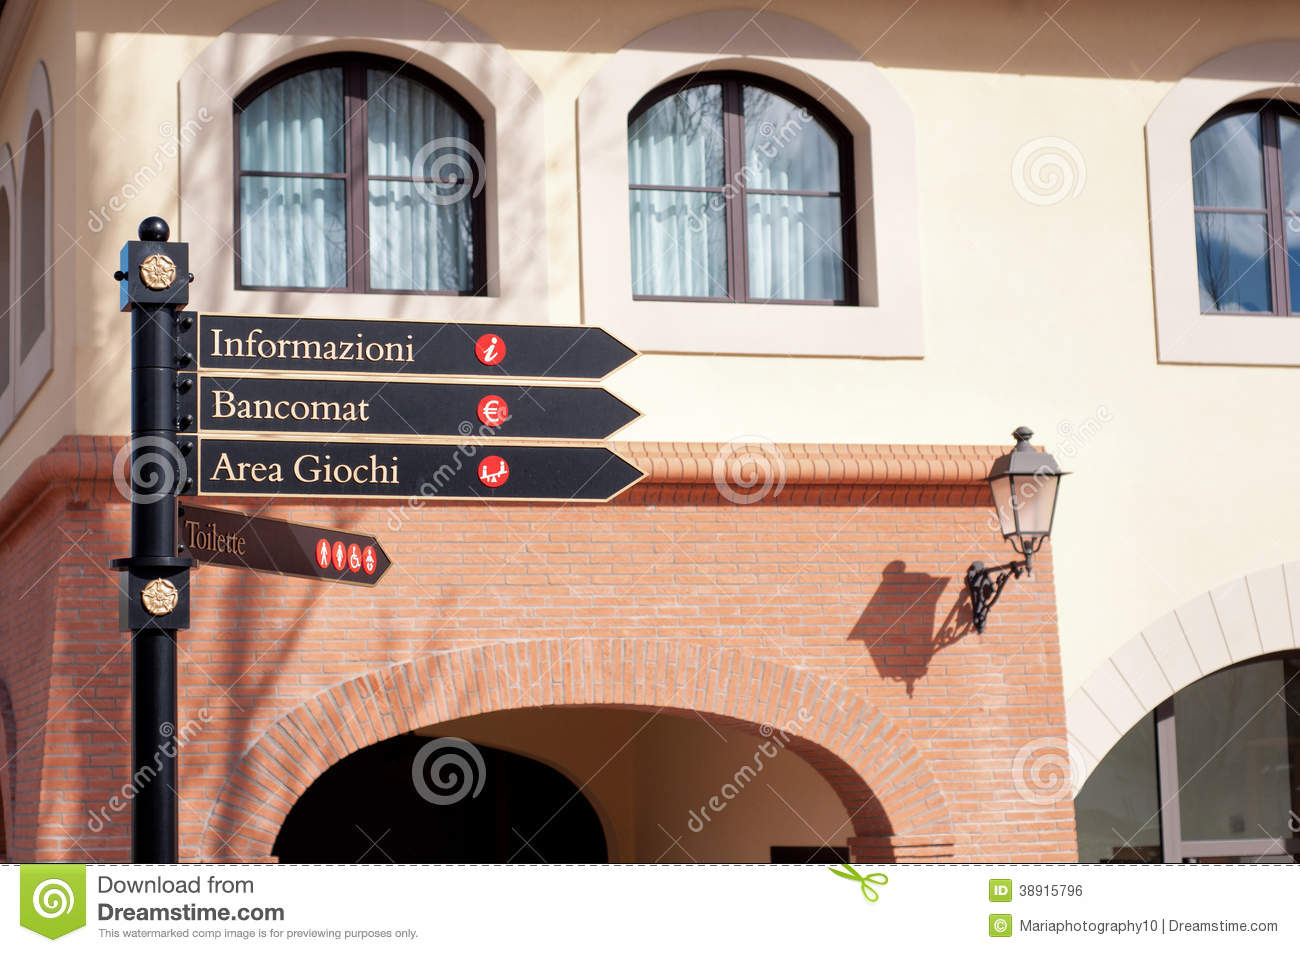 Signpost in Italy